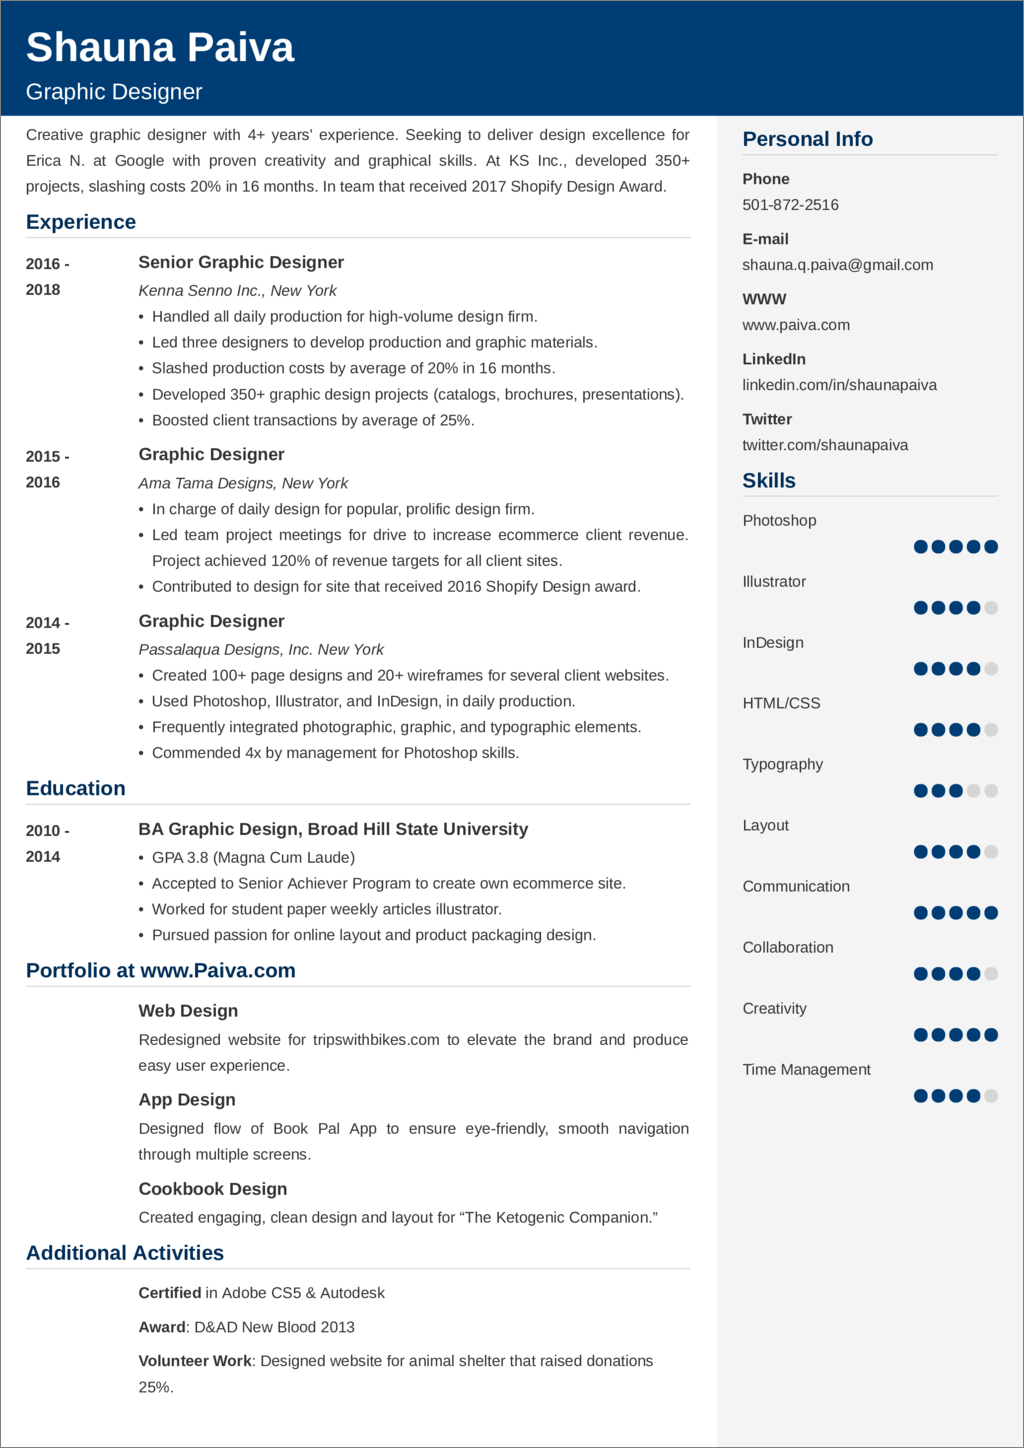 Resume 101—How to Write a Resume [Templates and 25+ Examples]